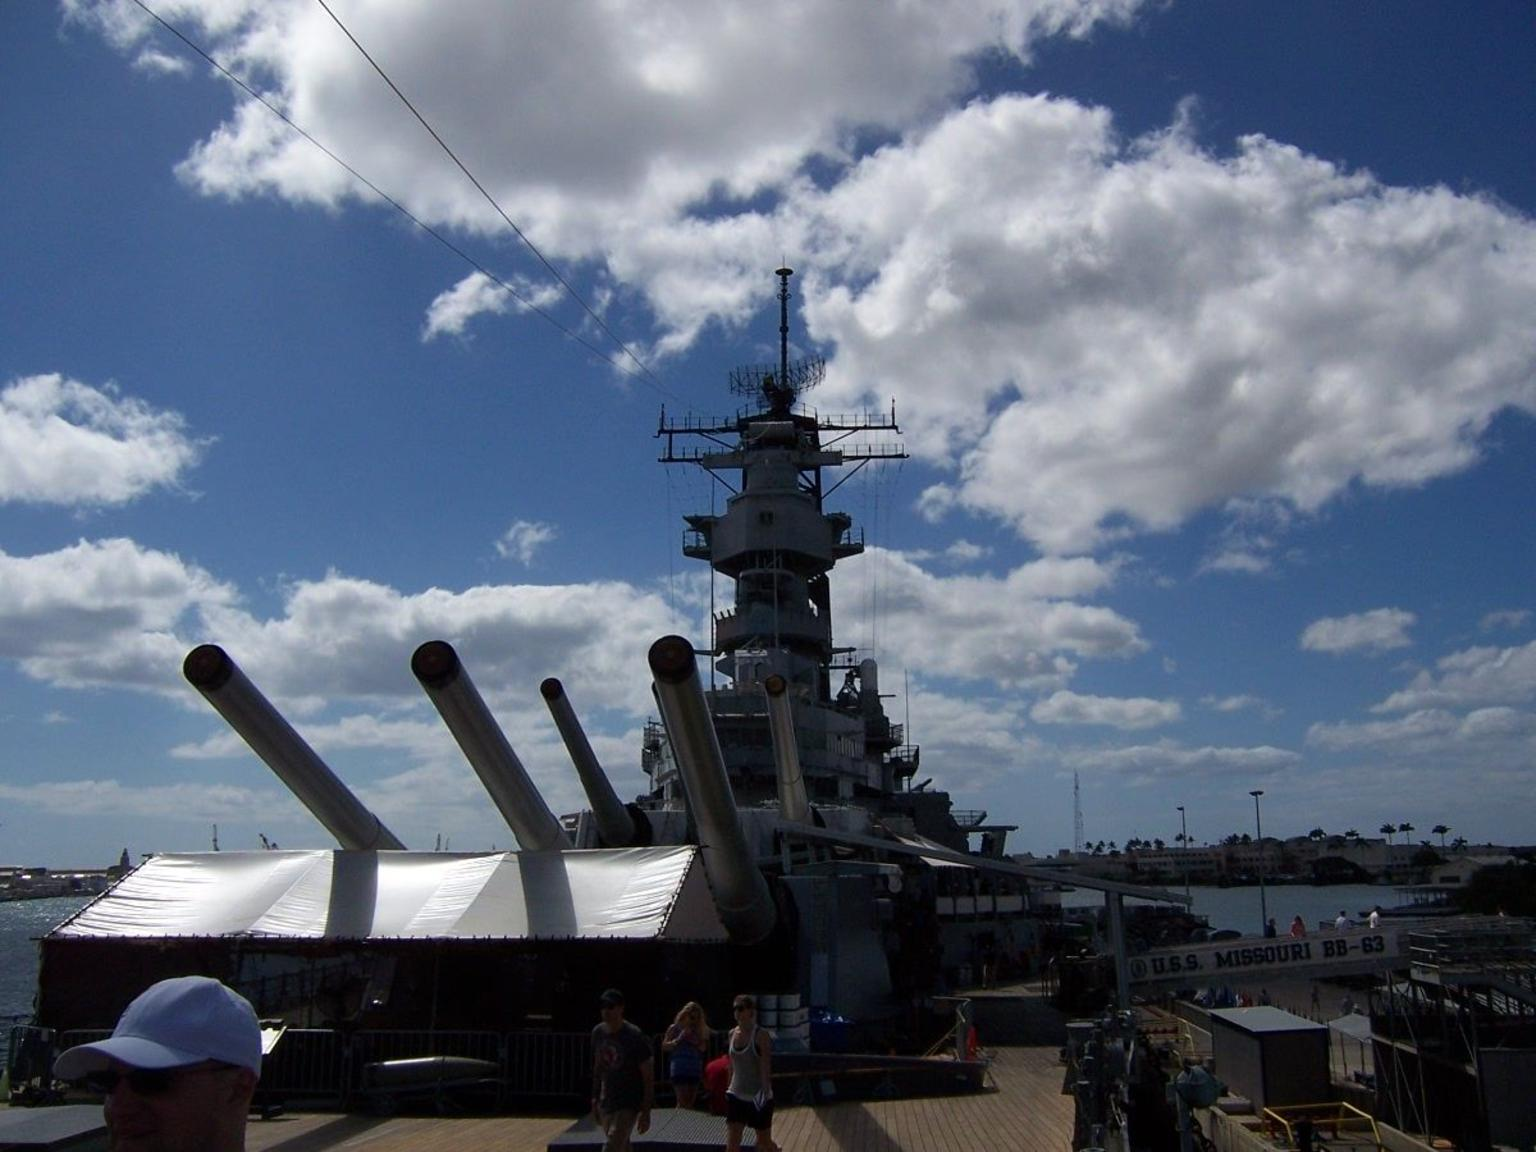 Oahu Day Trip to Pearl Harbor from Maui